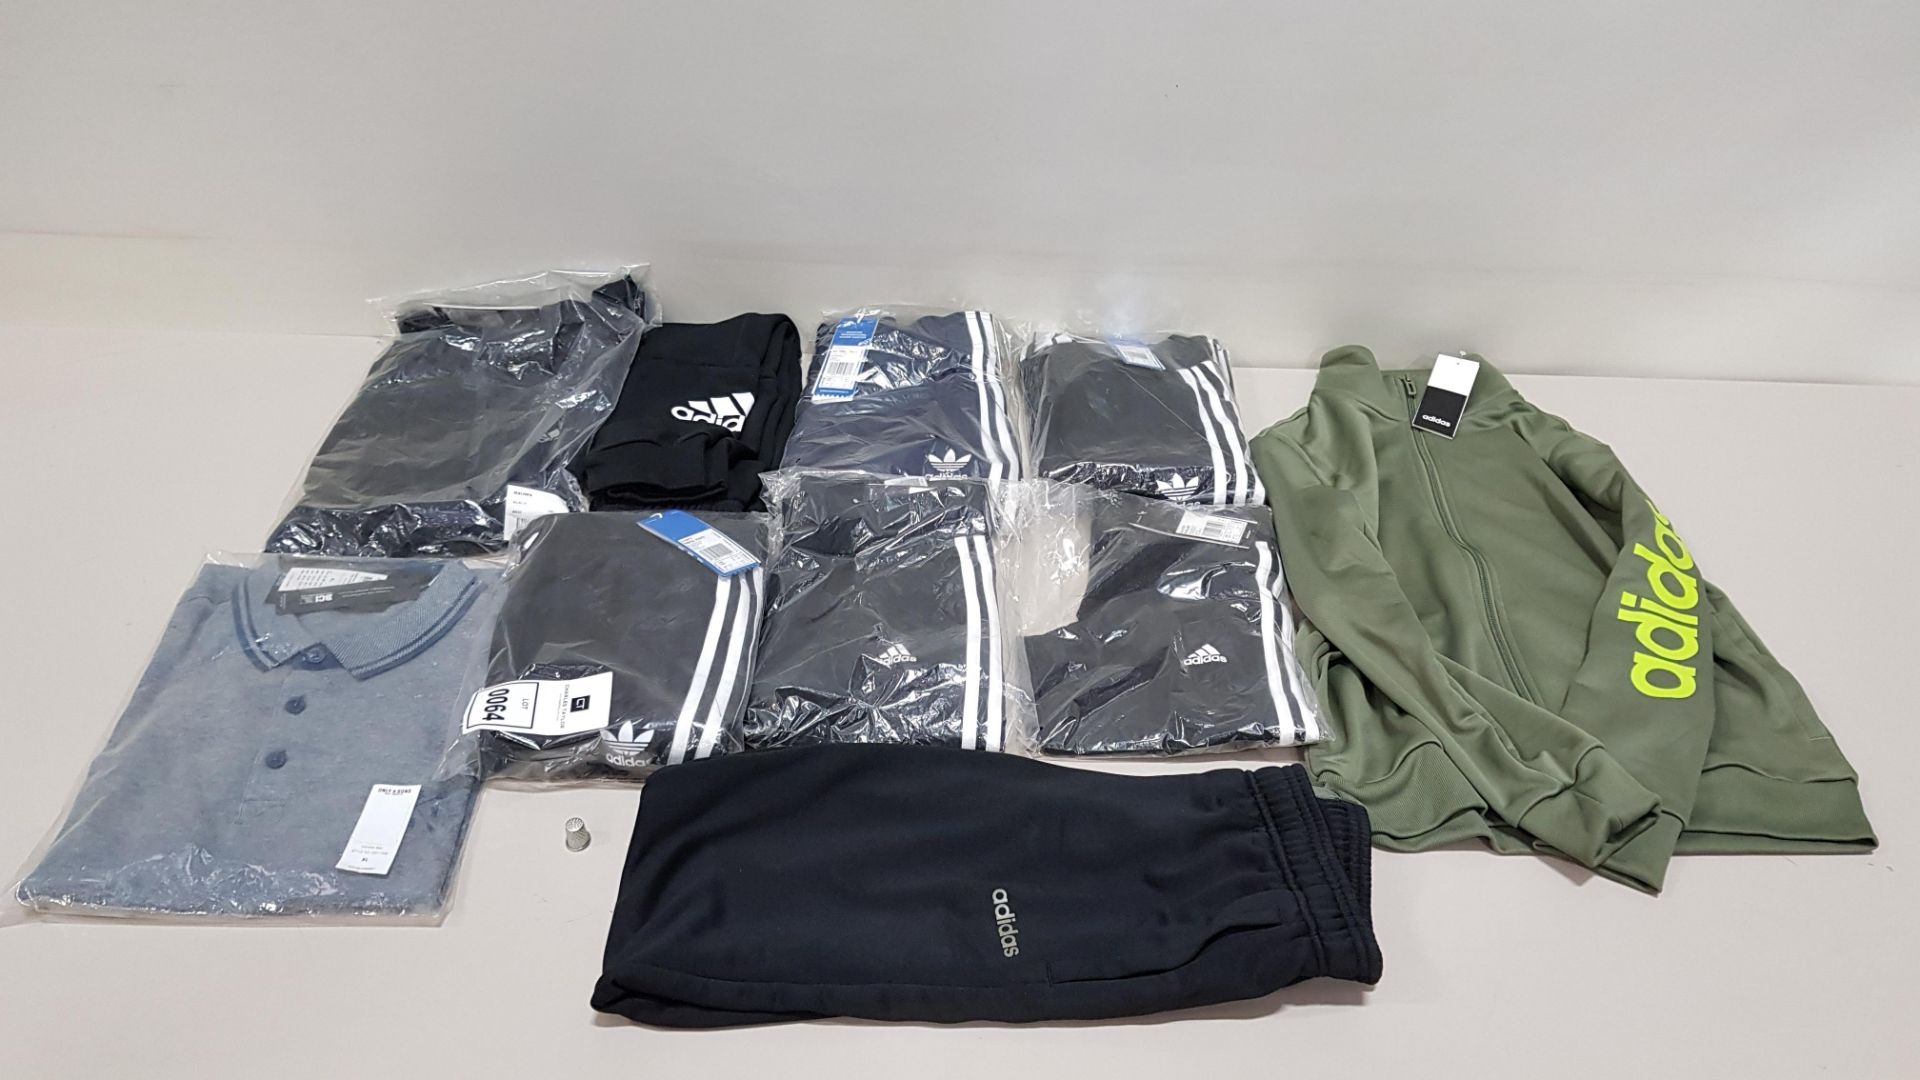 10 PIECE CLOTHING LOT CONTAINING ADIDAS TREFOIL PANTS, ADIDAS TRACK PANTS, ONLY & SONS POLO SHIRT